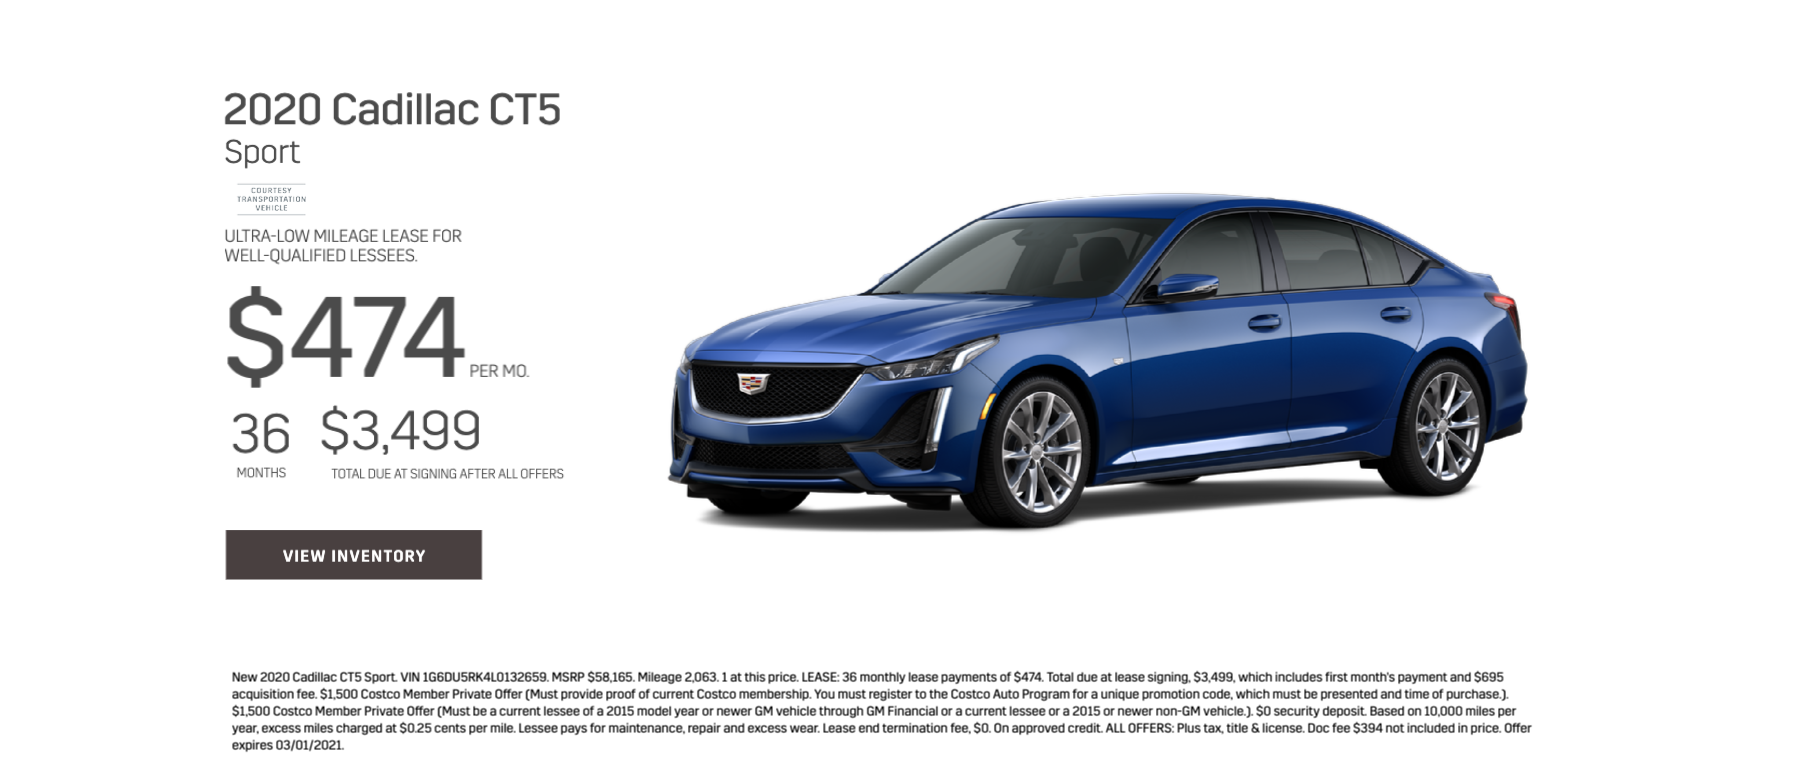 2020 Cadillac CT5 Sport Lease Offer for $474